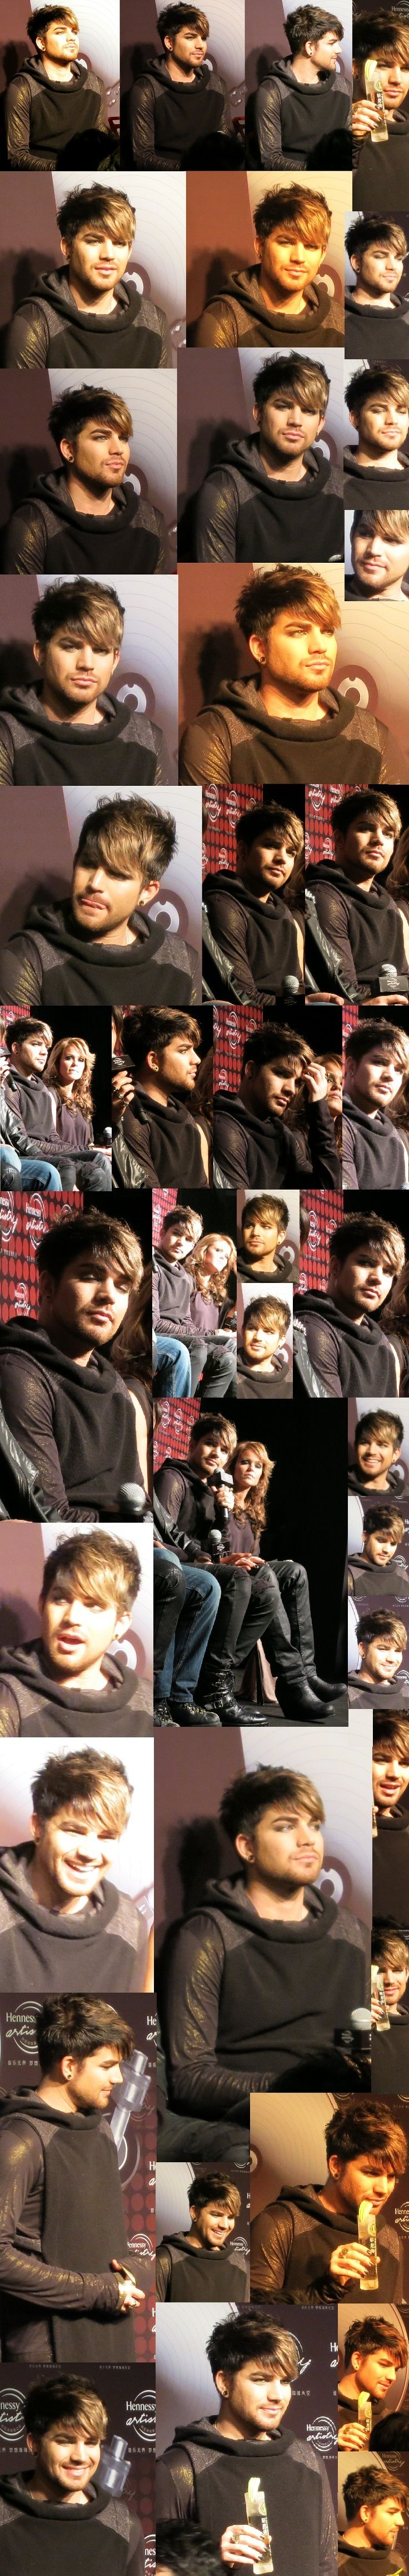 Am I the only one who thinks he looks a bit like a gay Ian Hecox from Smosh in these photos?